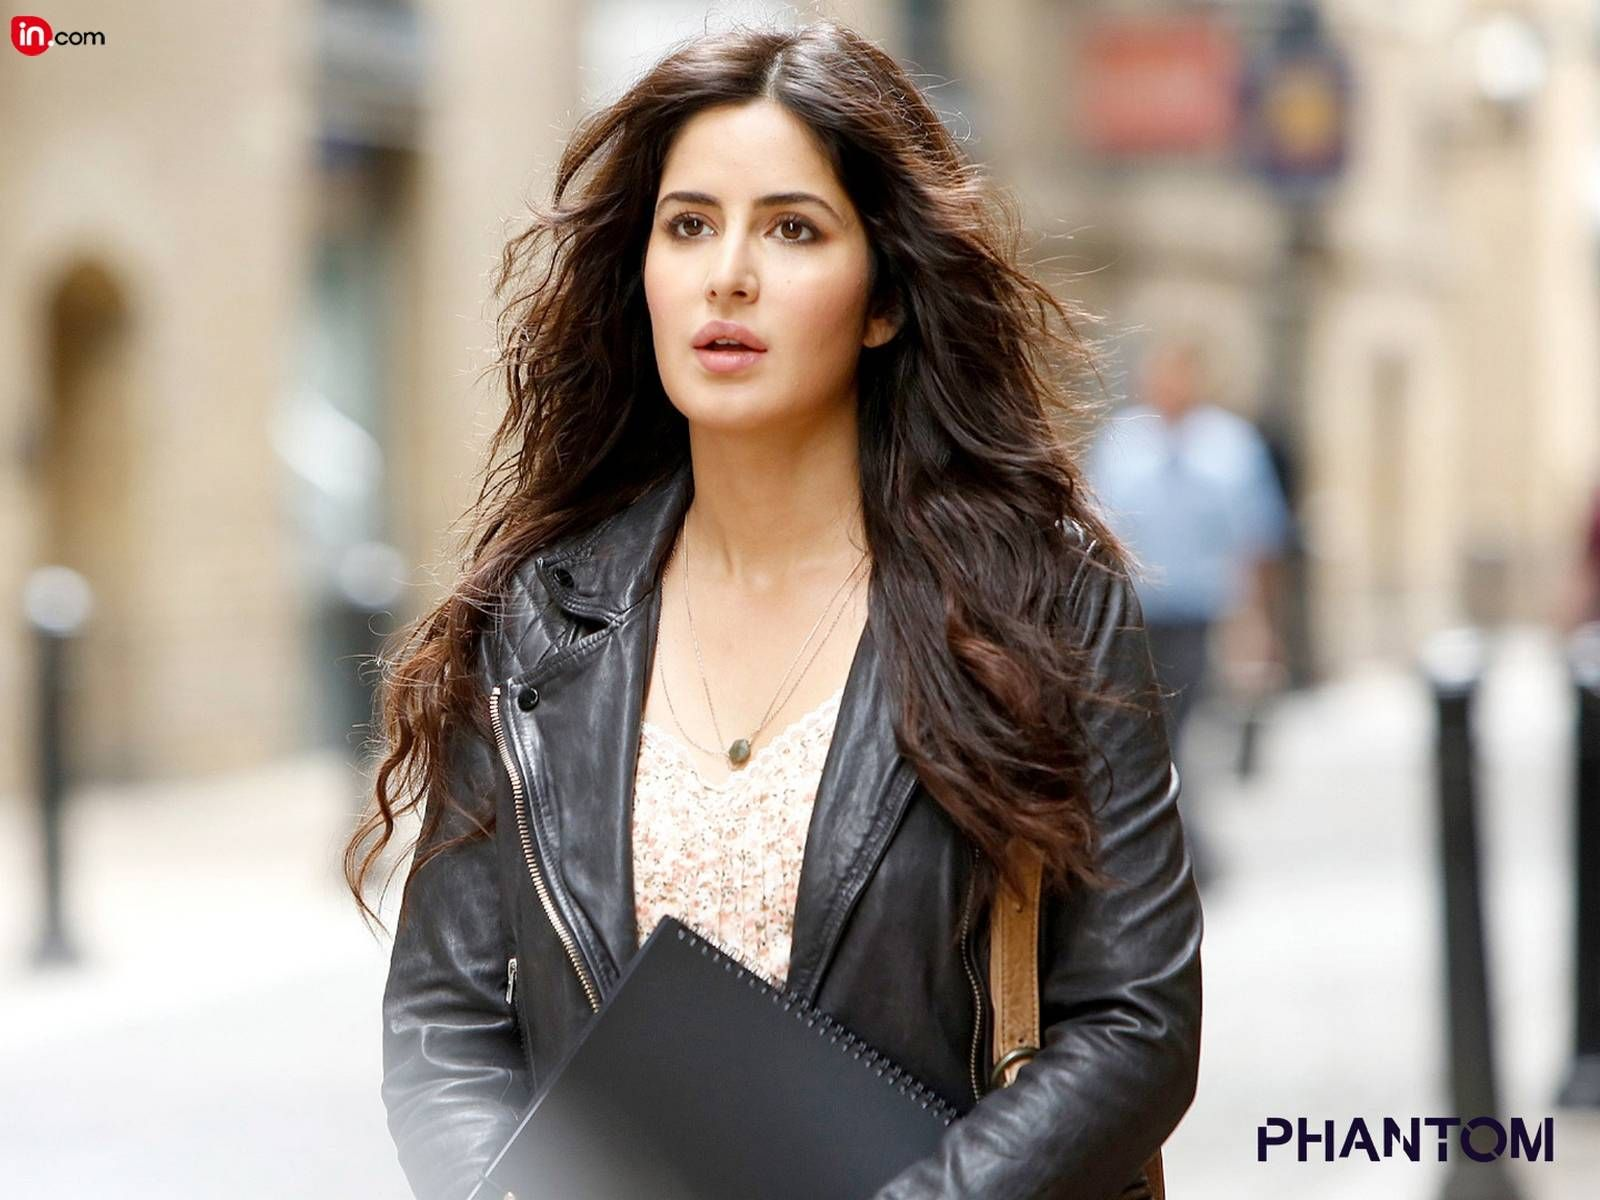 katrina pic wallpapers (71 wallpapers) – hd wallpapers | kat